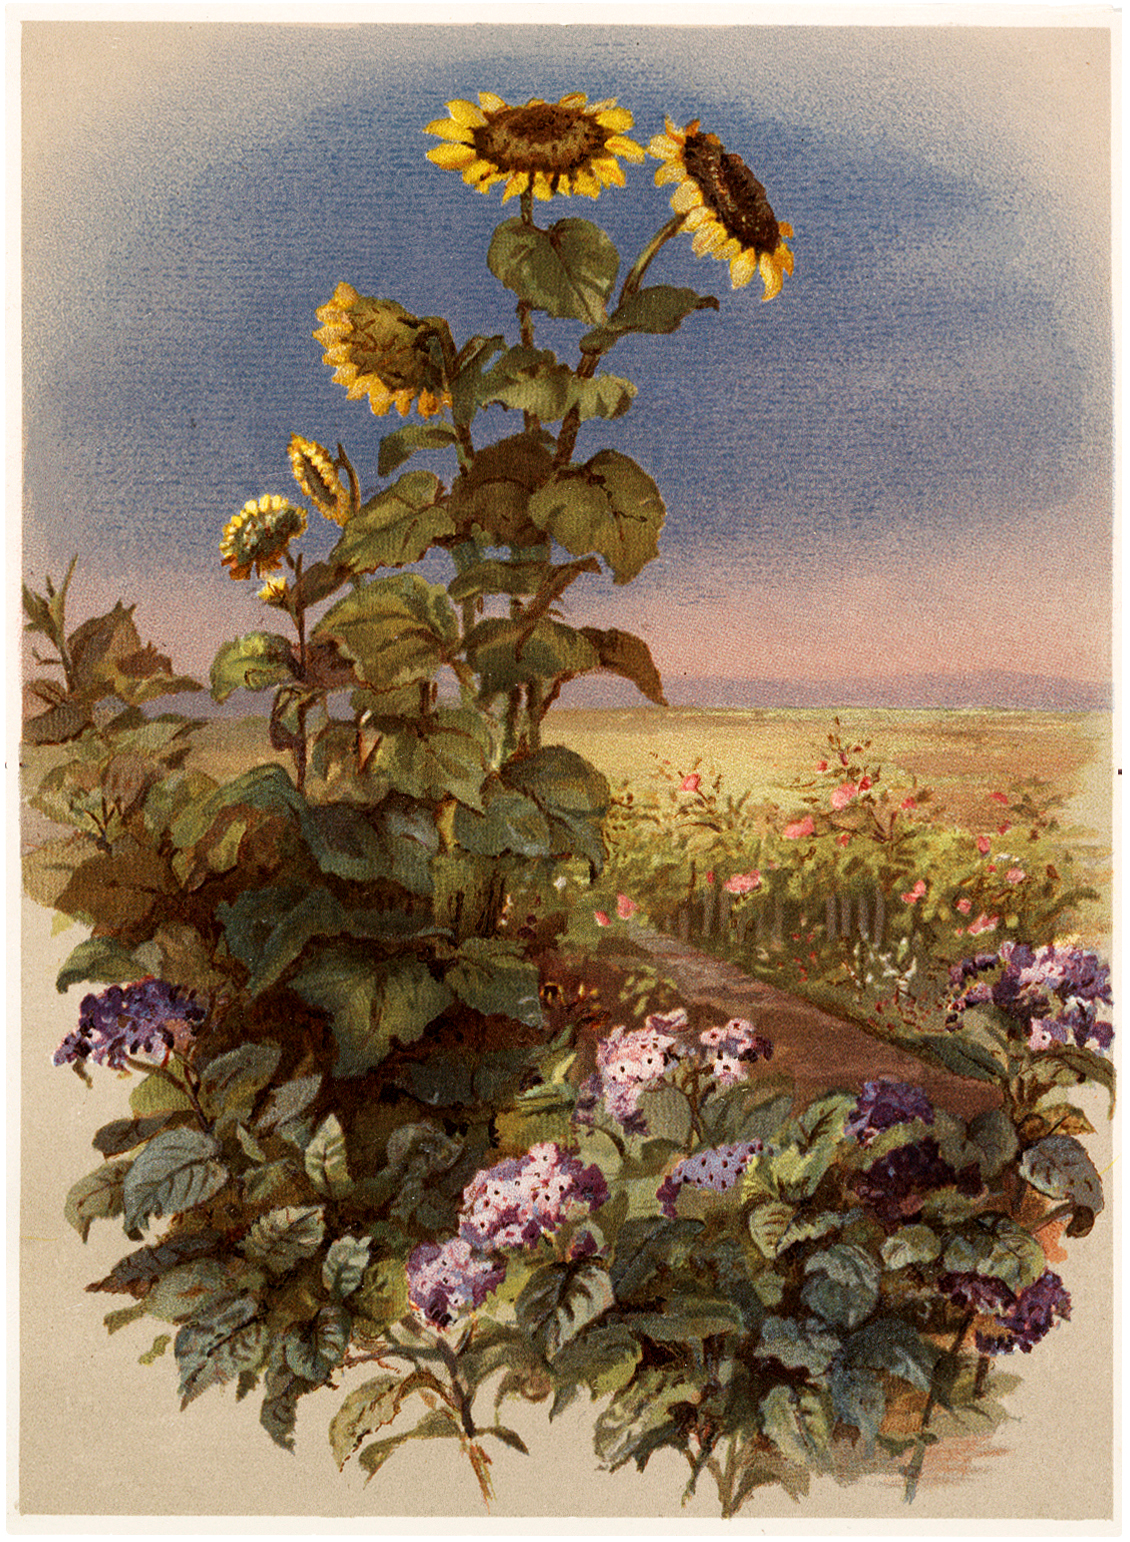 Vintage Tall Sunflowers in Garden Image - The Graphics Fairy